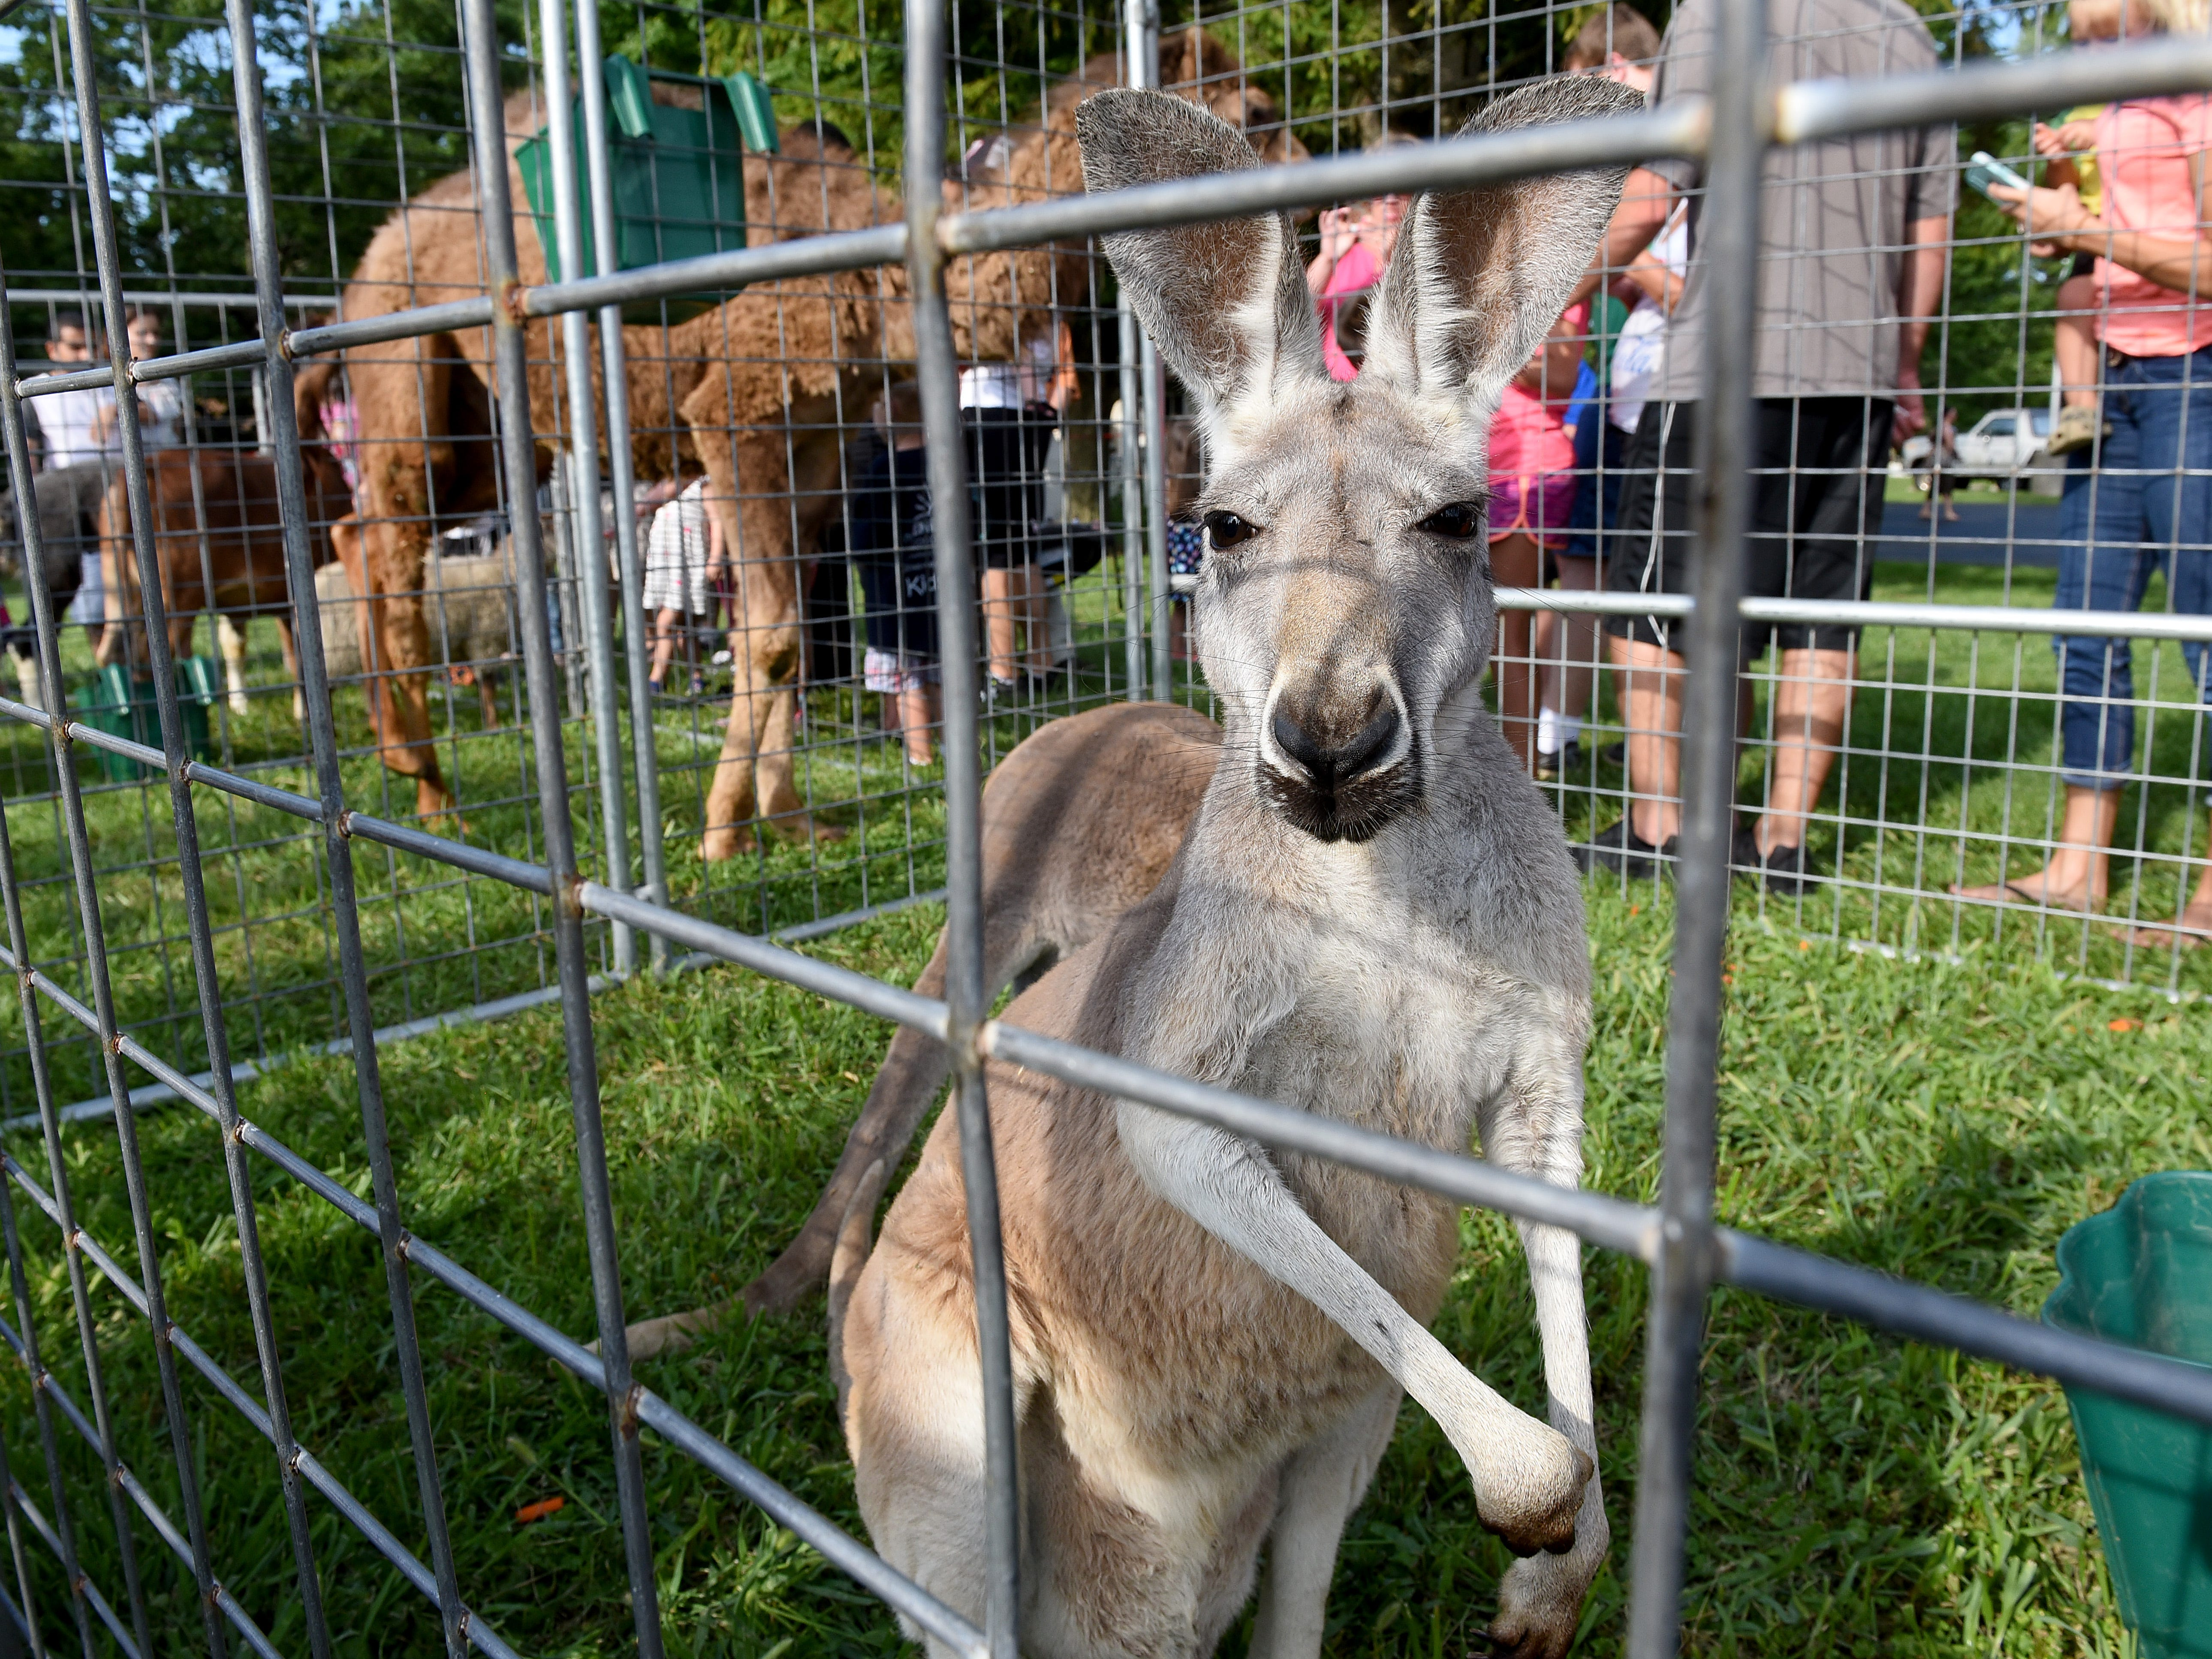 The Jungle Island Zoo out of Delphos visited the Pataskala Public Library on Thursday, Aug. 9, 2019.